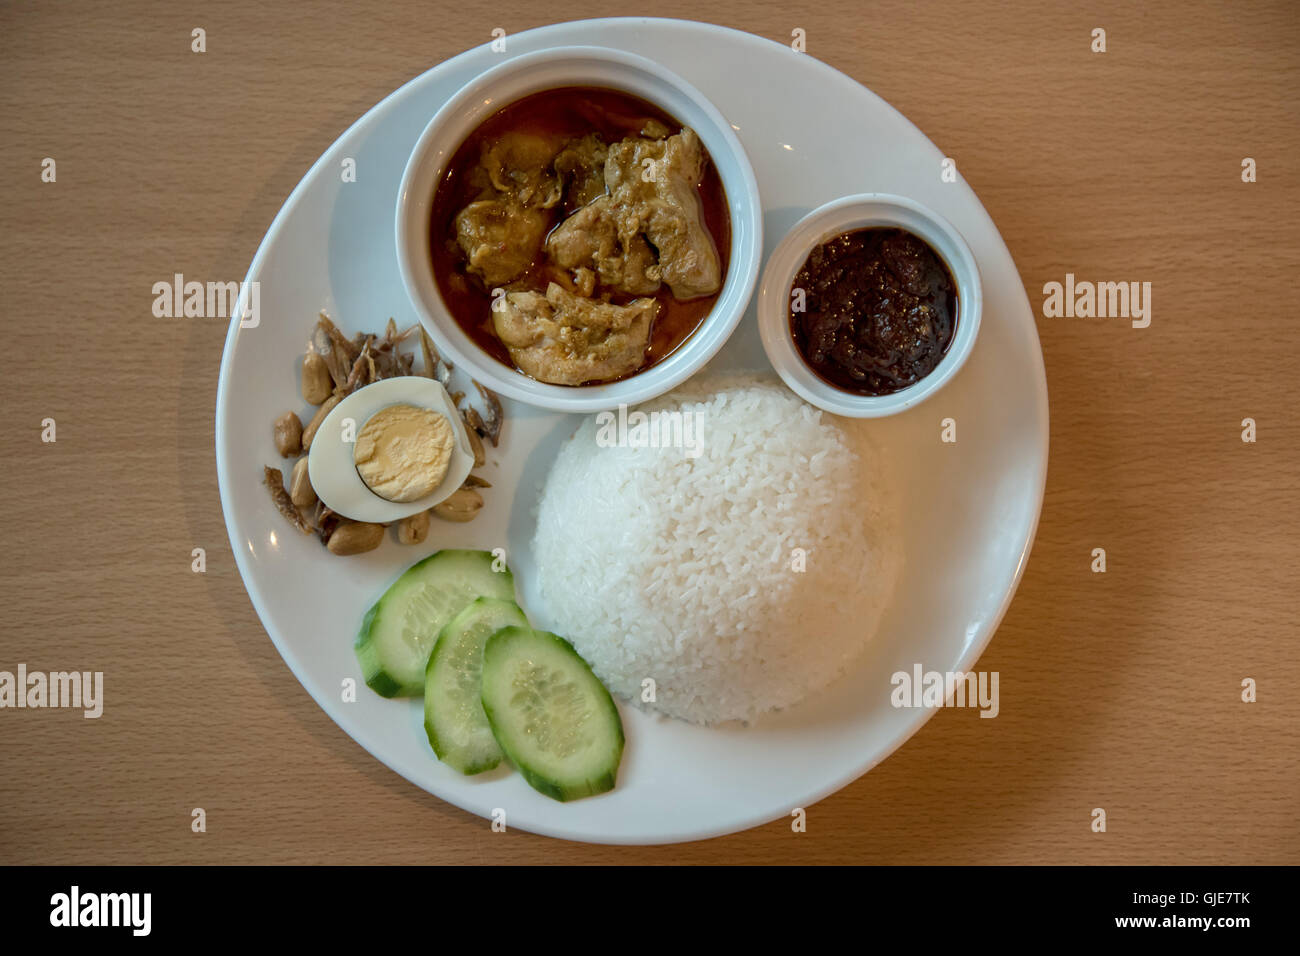 Nasi Lemak with chicken curry, anchovies, boiled egg, spicy sambal and rice - Stock Image